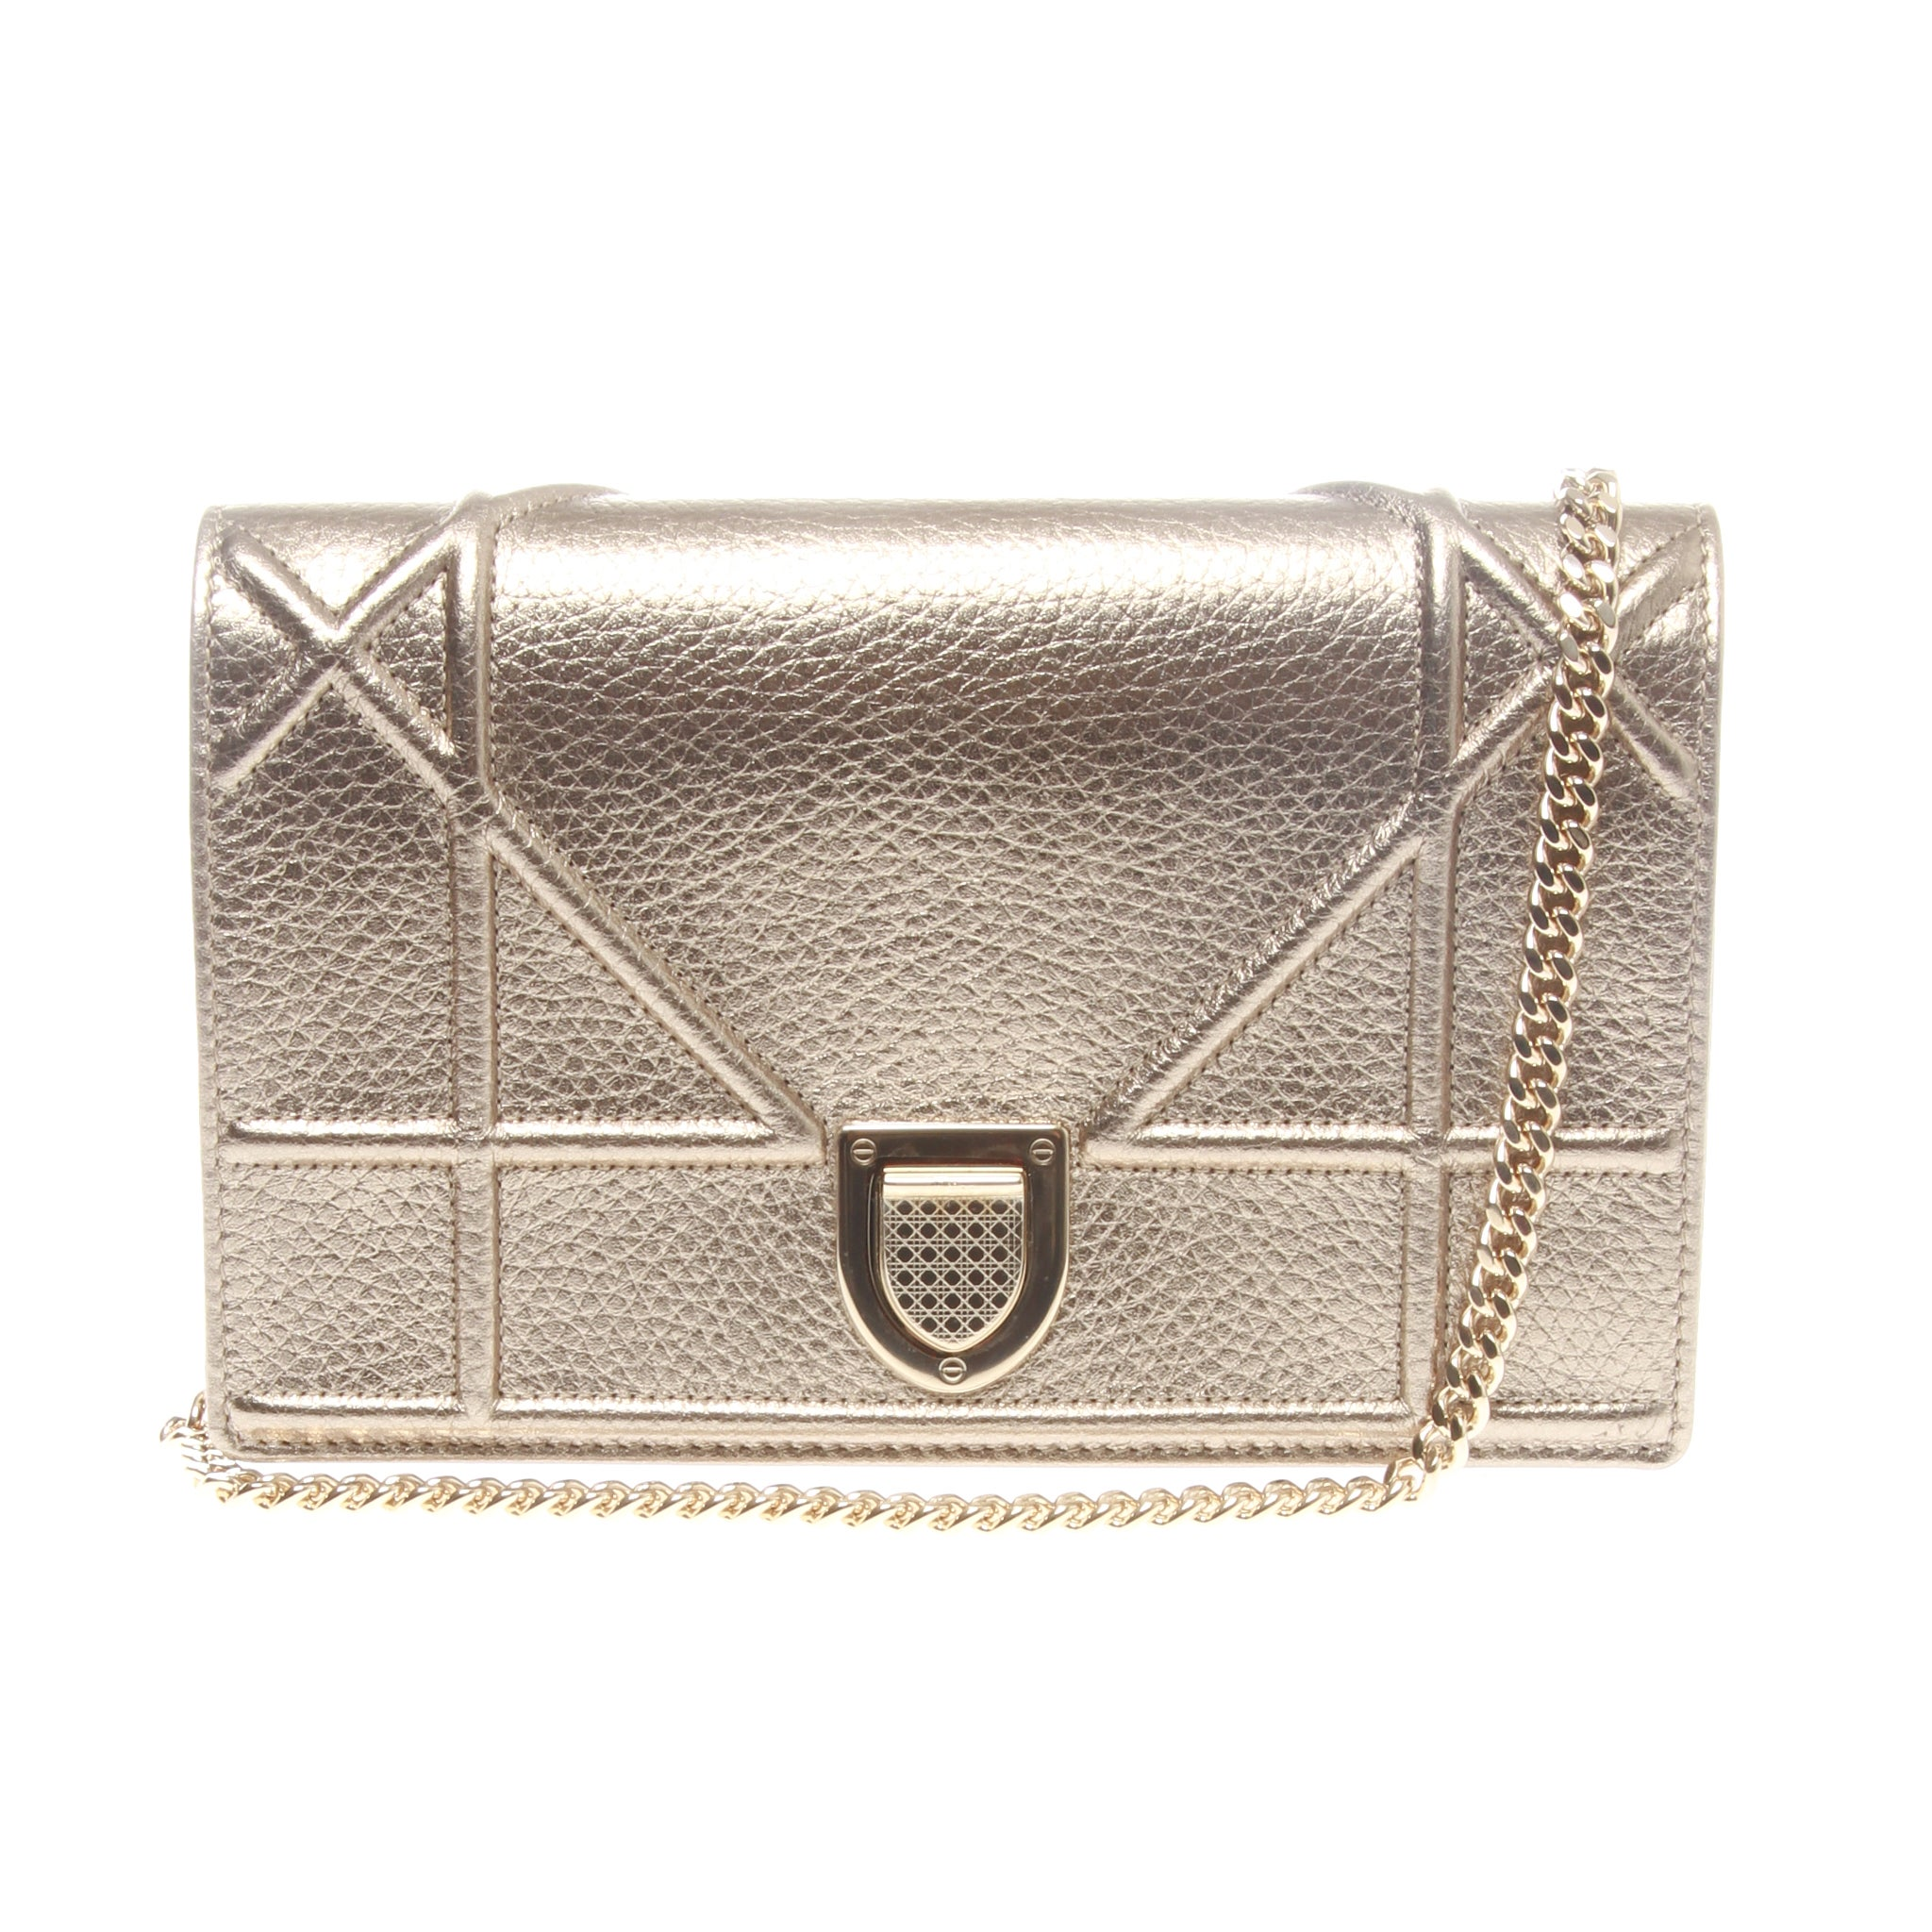 a184cfbe3cf Christian Dior Diorama Wallet on chain pouch in nude grained calfskin at  1stdibs